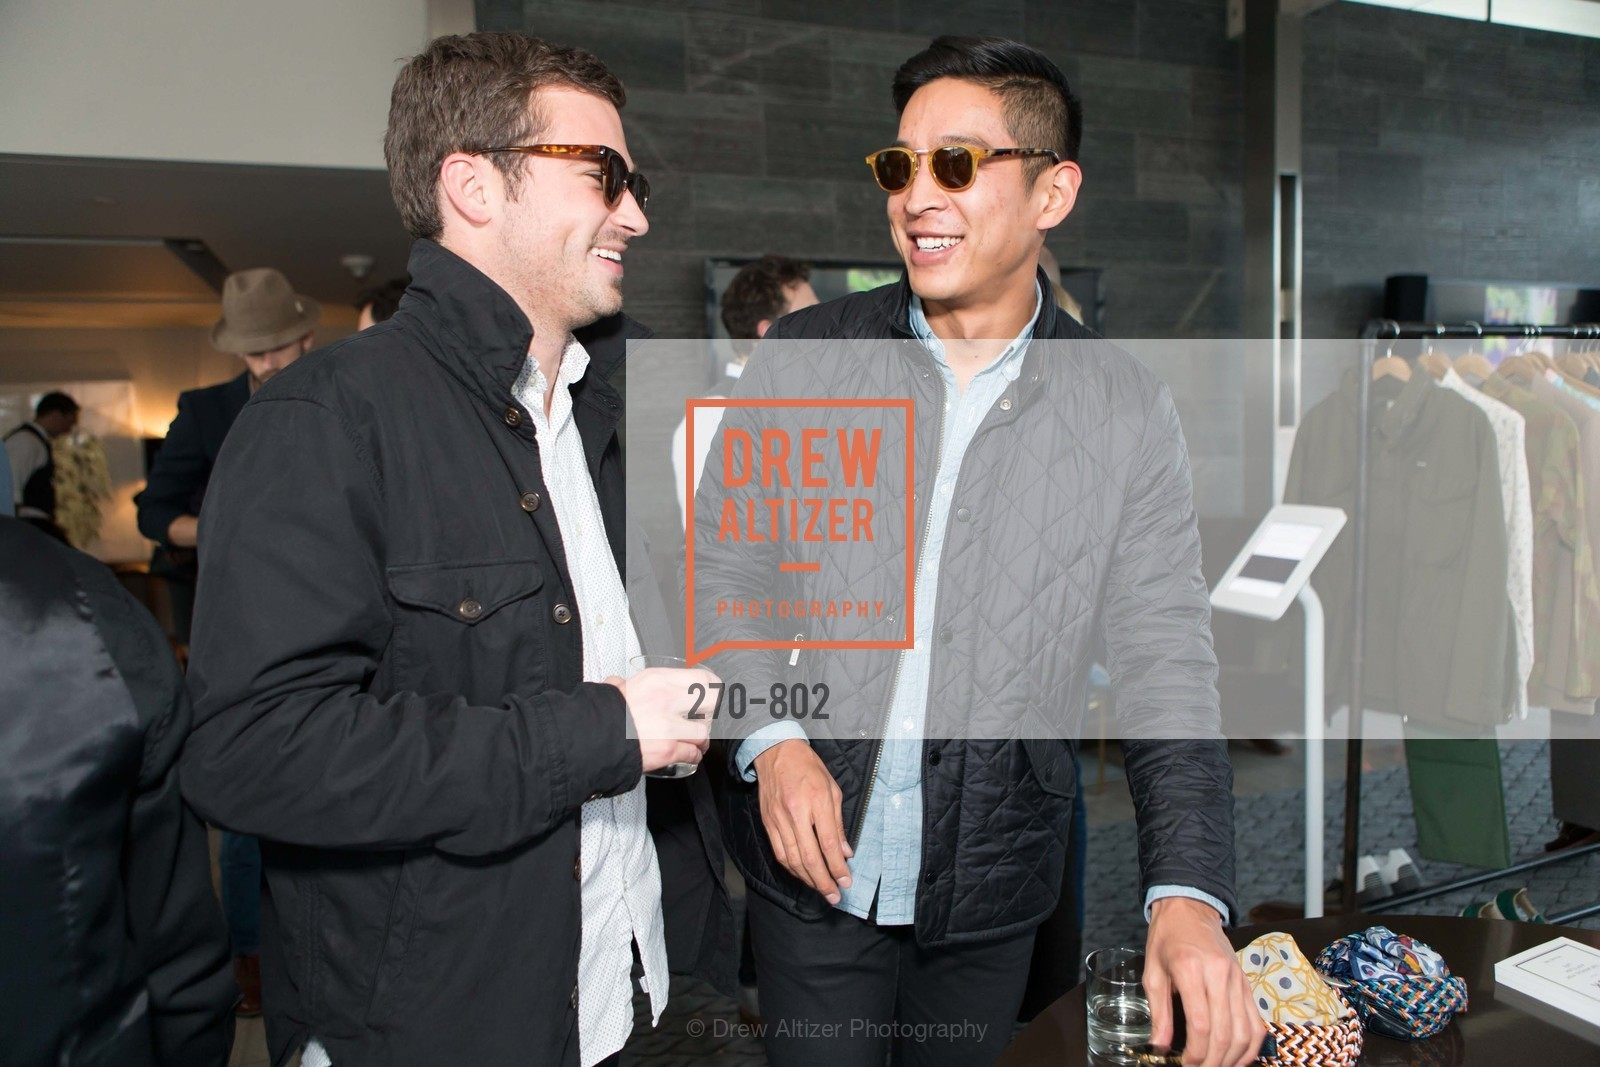 Jordan Bewtner, Alex Kim, MR PORTER Celebrate The San Francisco Issue of The Journal, US, April 24th, 2015,Drew Altizer, Drew Altizer Photography, full-service agency, private events, San Francisco photographer, photographer california